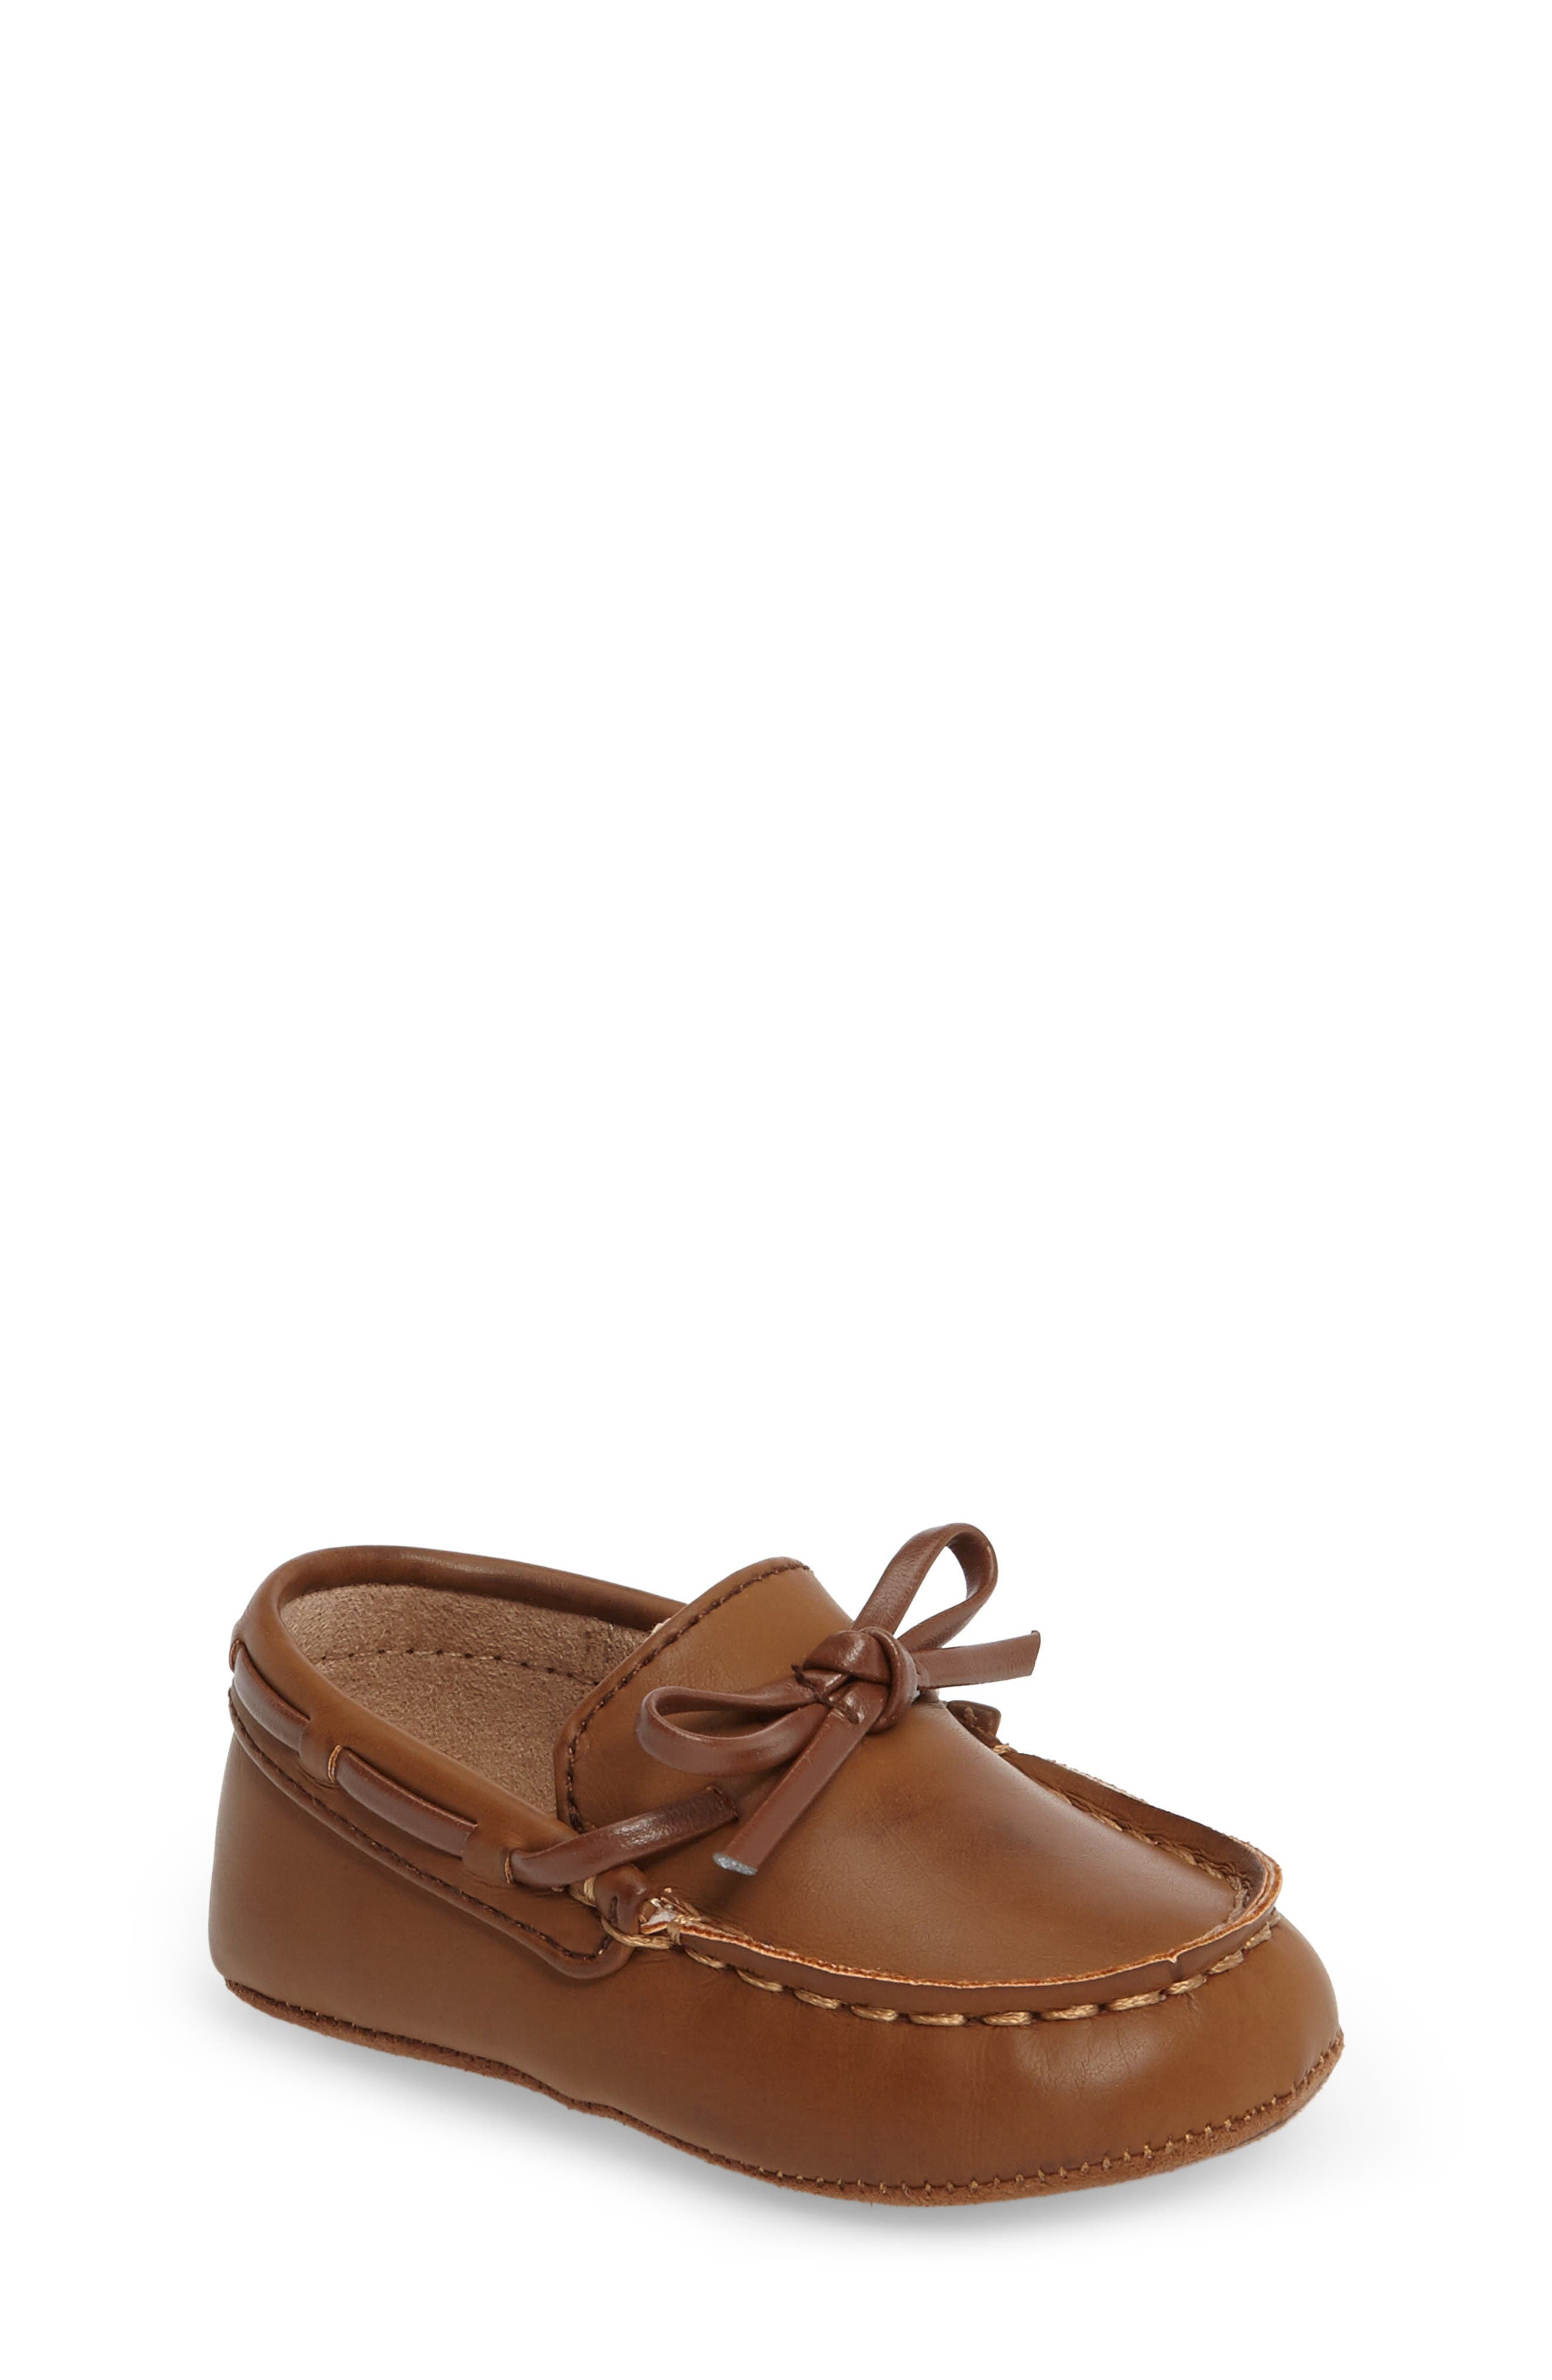 Kenneth Cole New York Baby Boat Shoe (Baby)